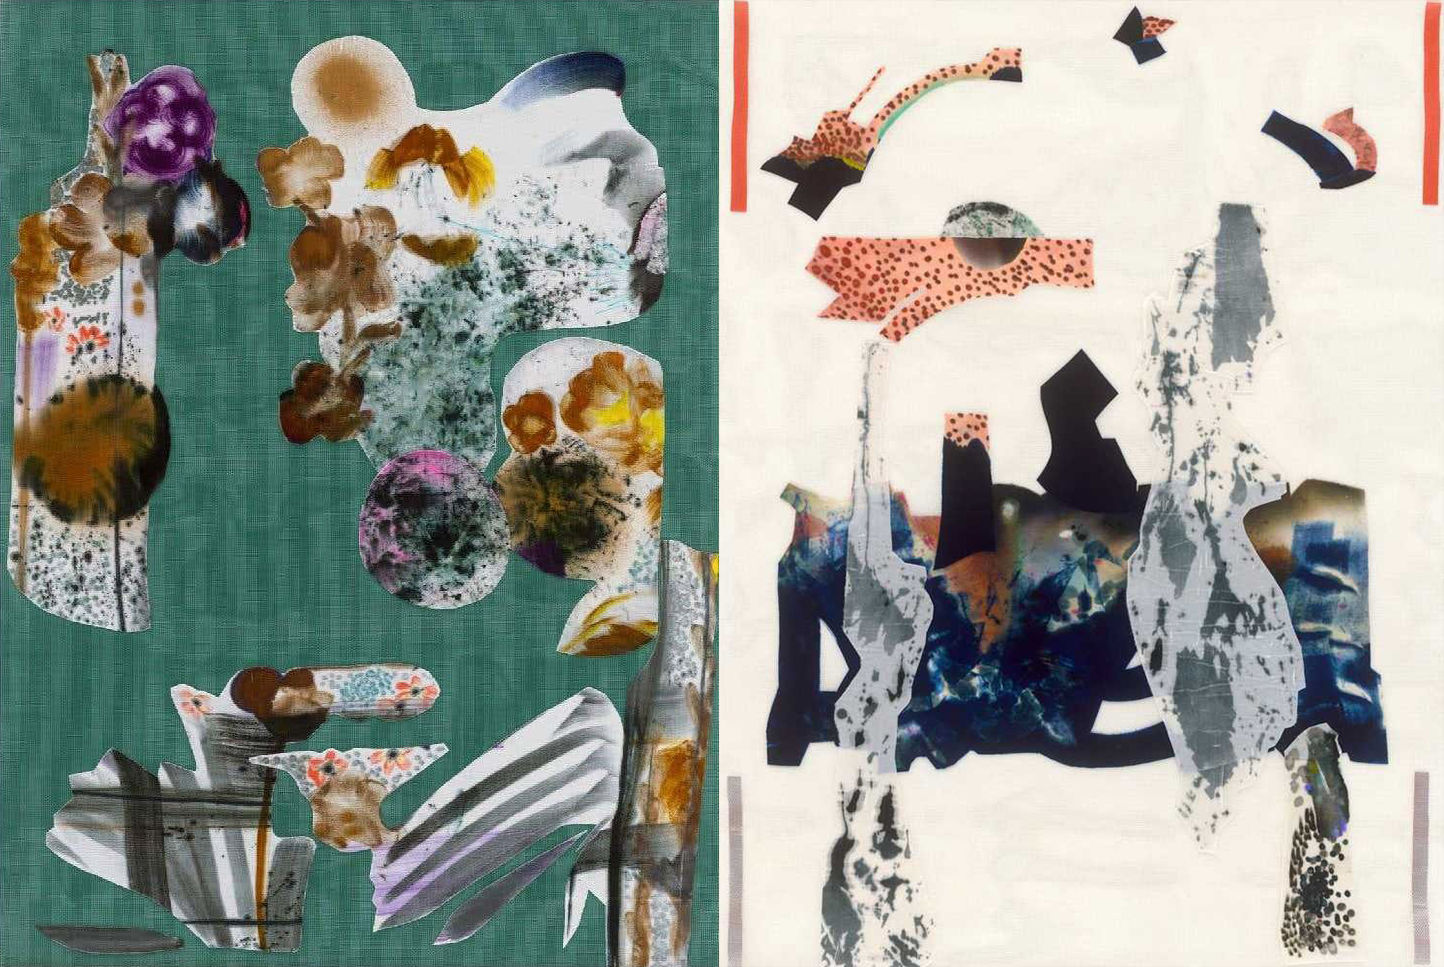 Two abstract collages by Travis Boyer.